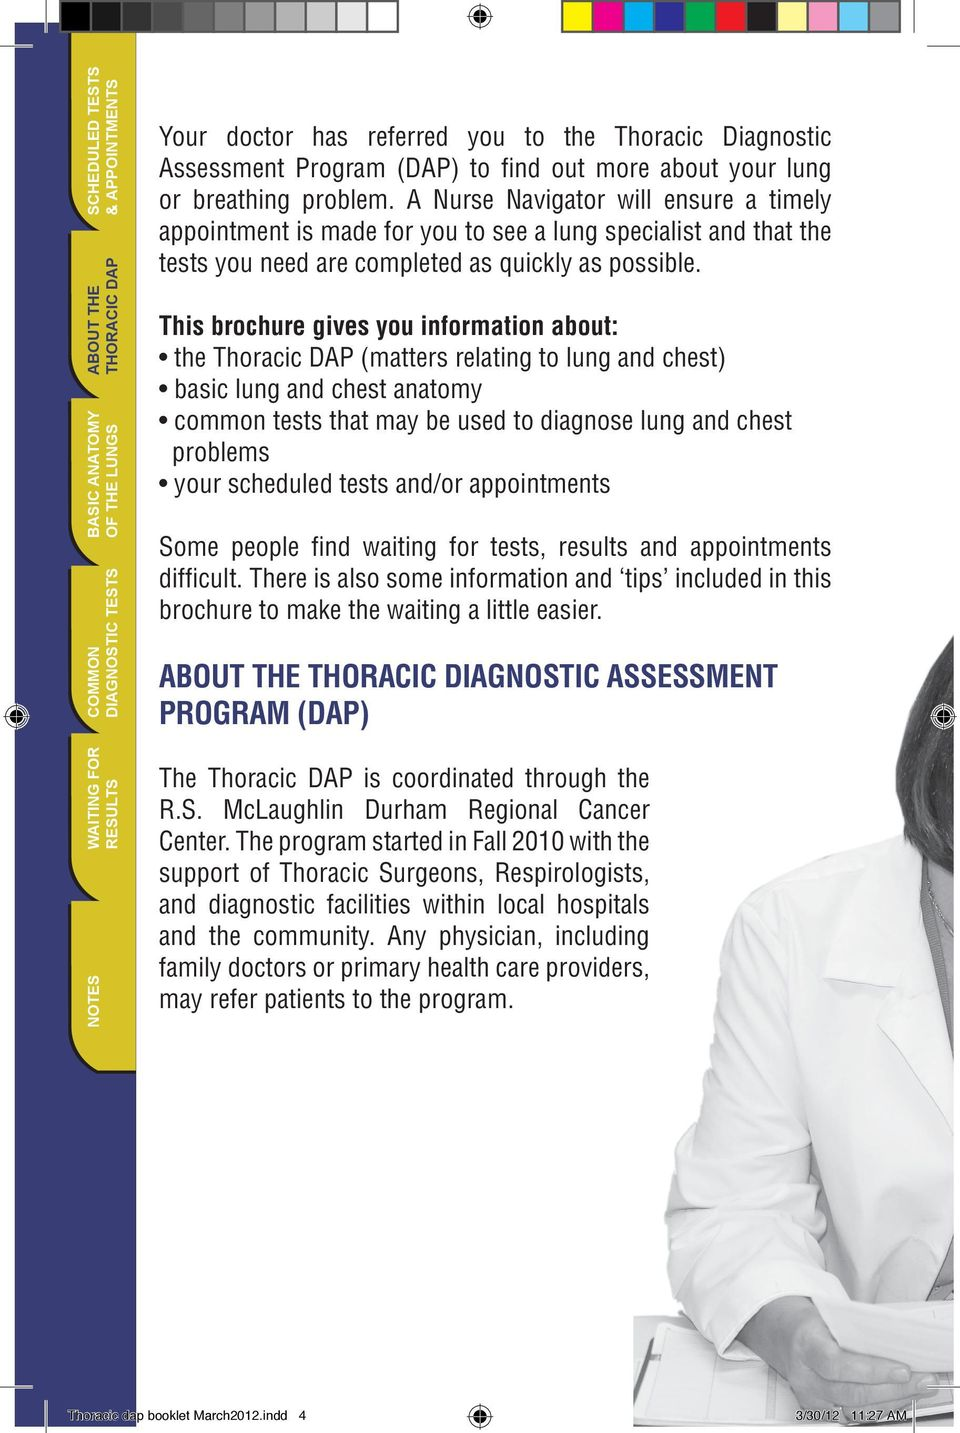 This brochure gives you information about: the Thoracic DAP (matters relating to lung and chest) basic lung and chest anatomy common tests that may be used to diagnose lung and chest problems your